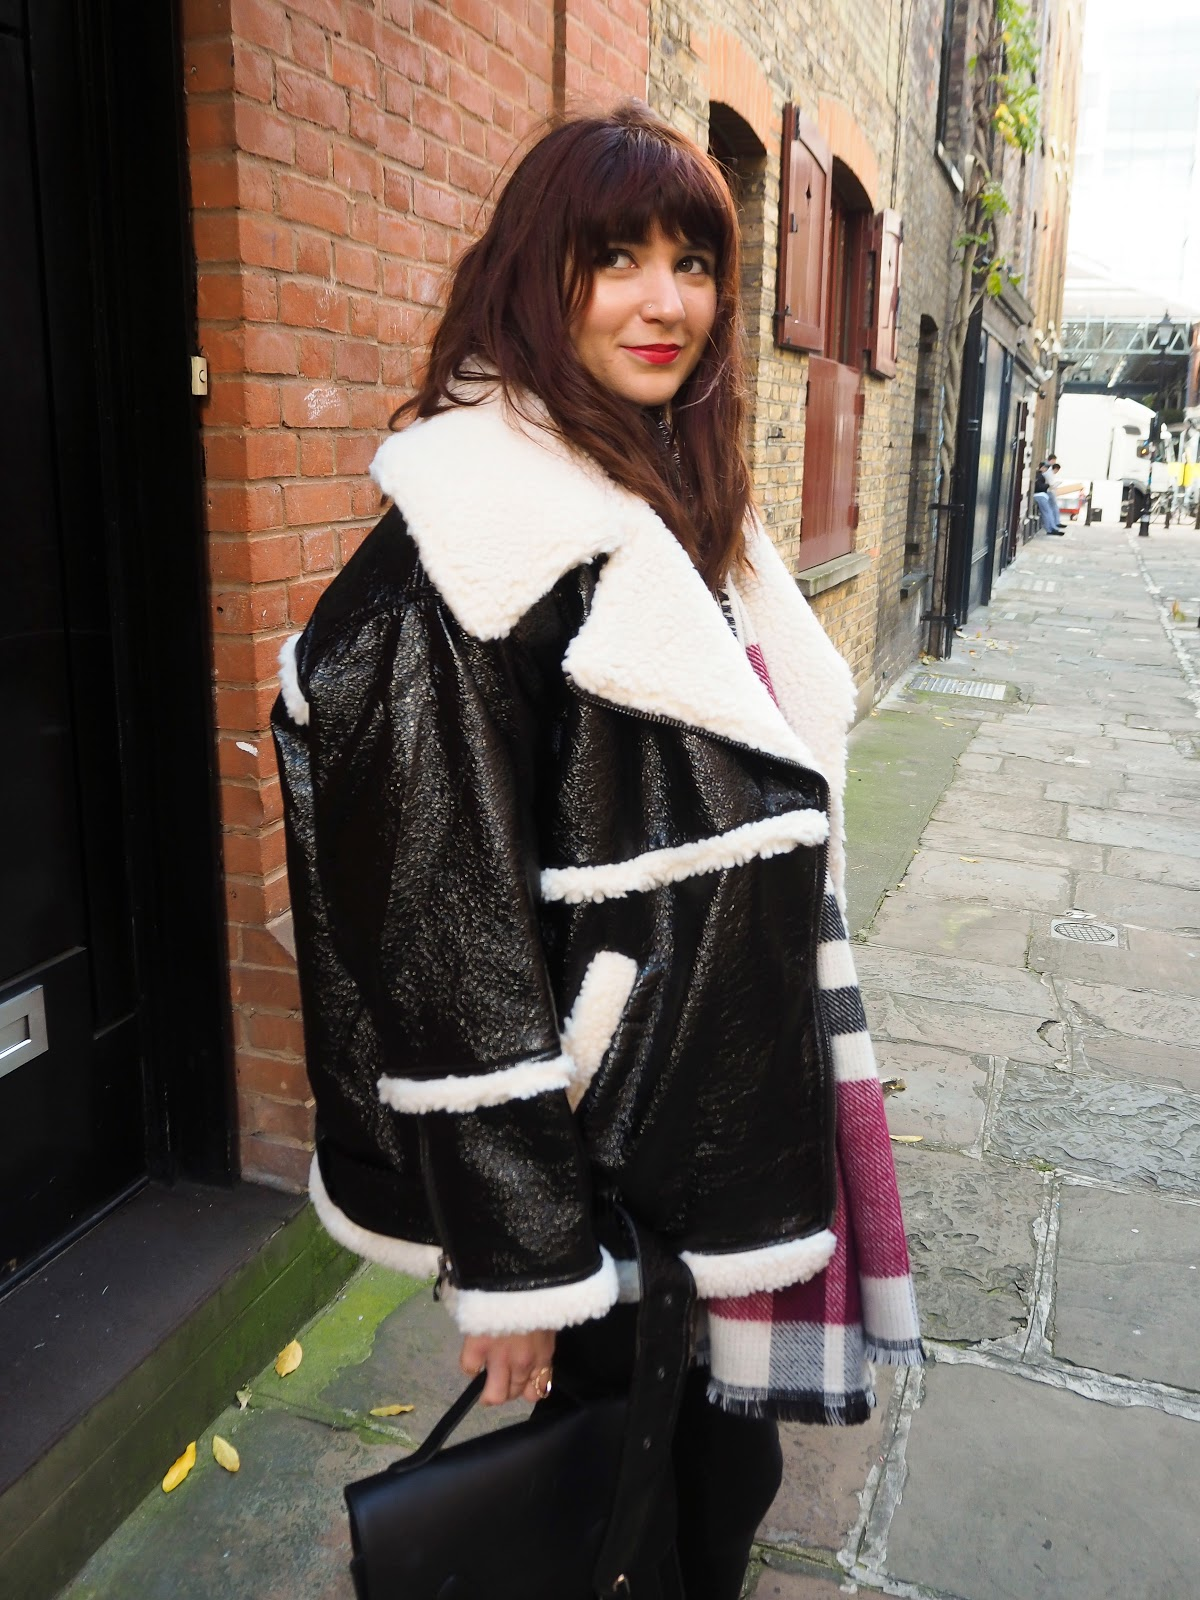 Monki-ing around in this patent and shearling coat